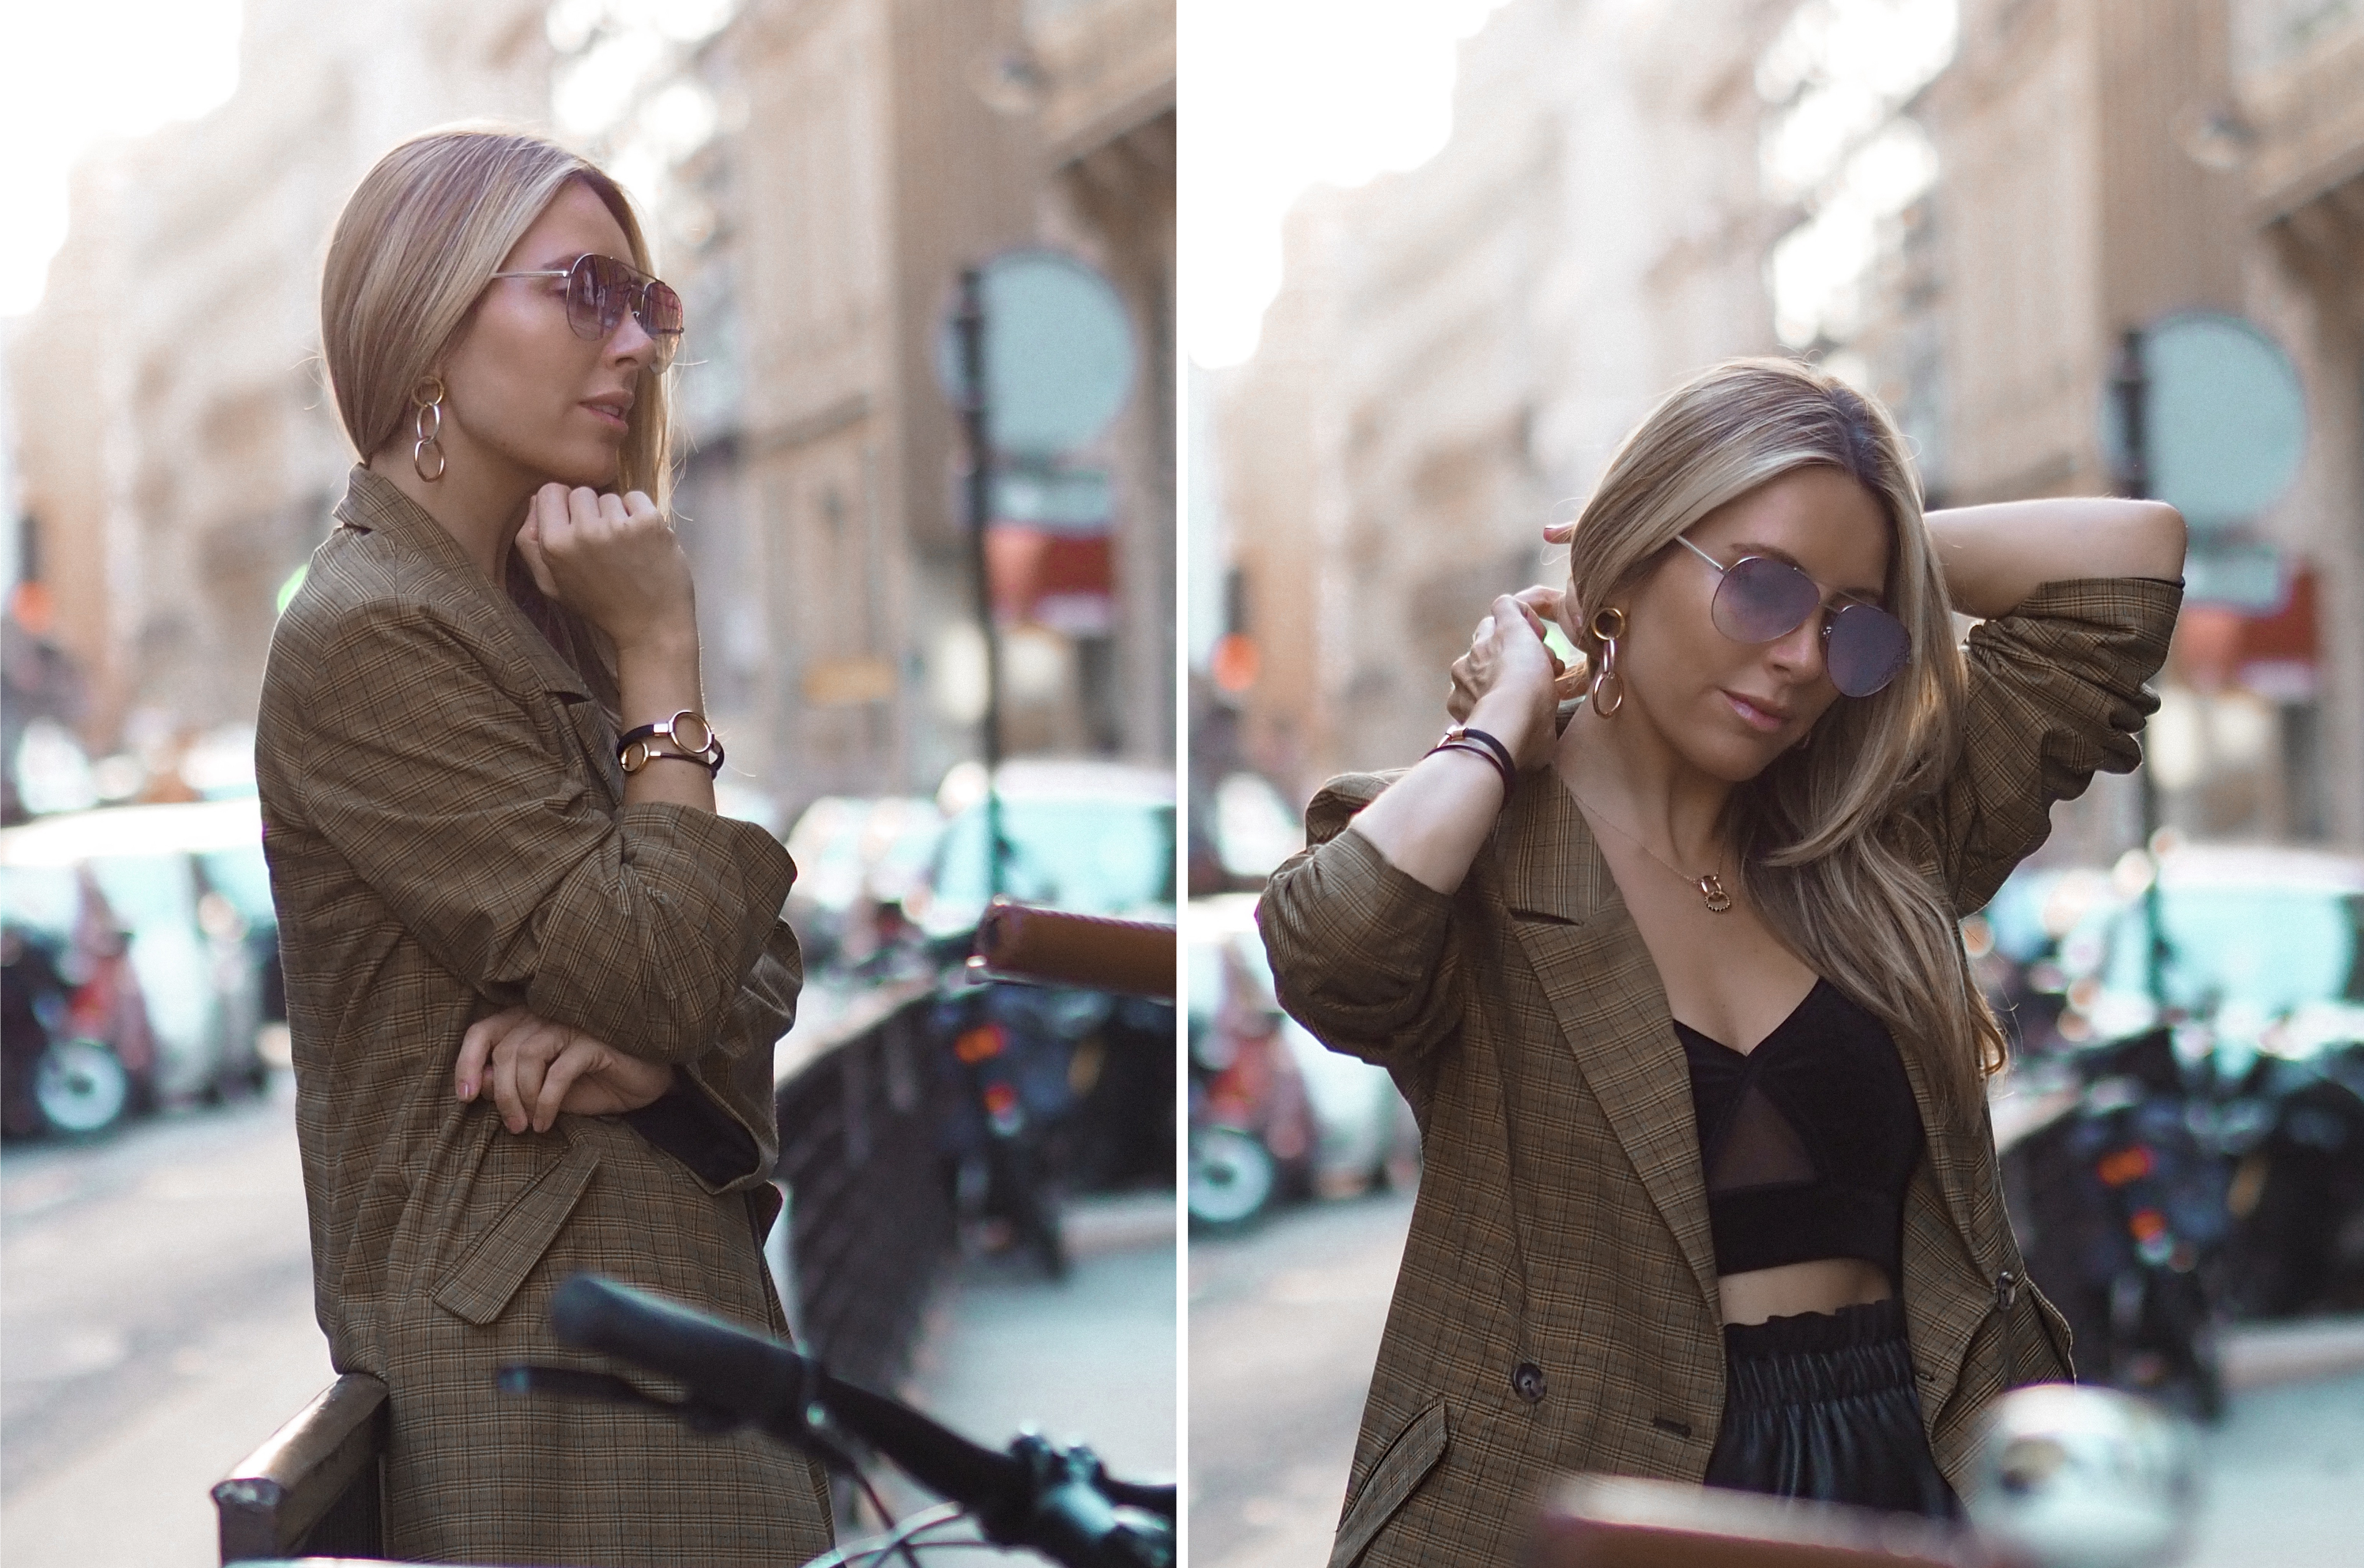 Hold Collection from Tous. By Monica Sors. PFW Street Style September 2018